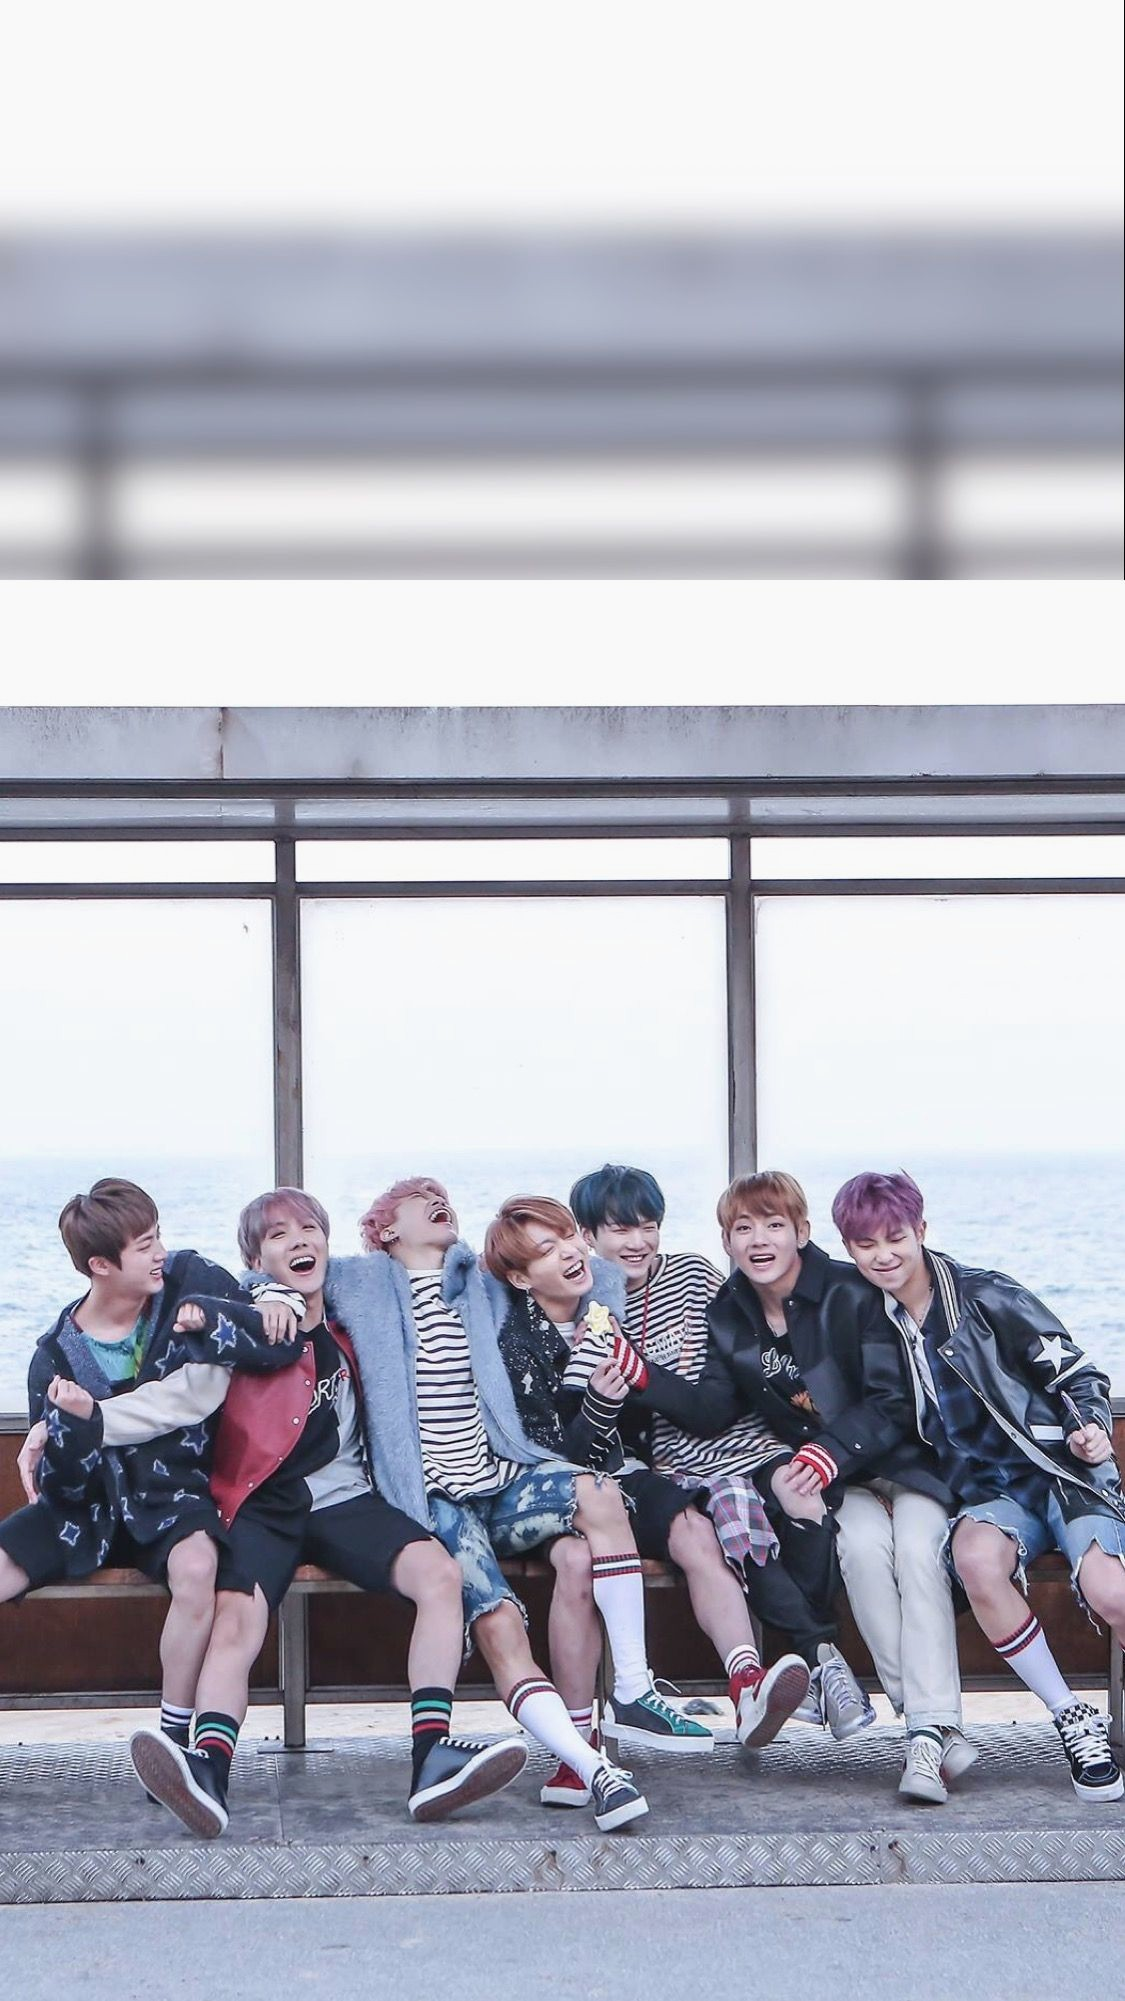 Bts Wallpaper Hd Iphone Bts Wallpaper Spring Day, Hd